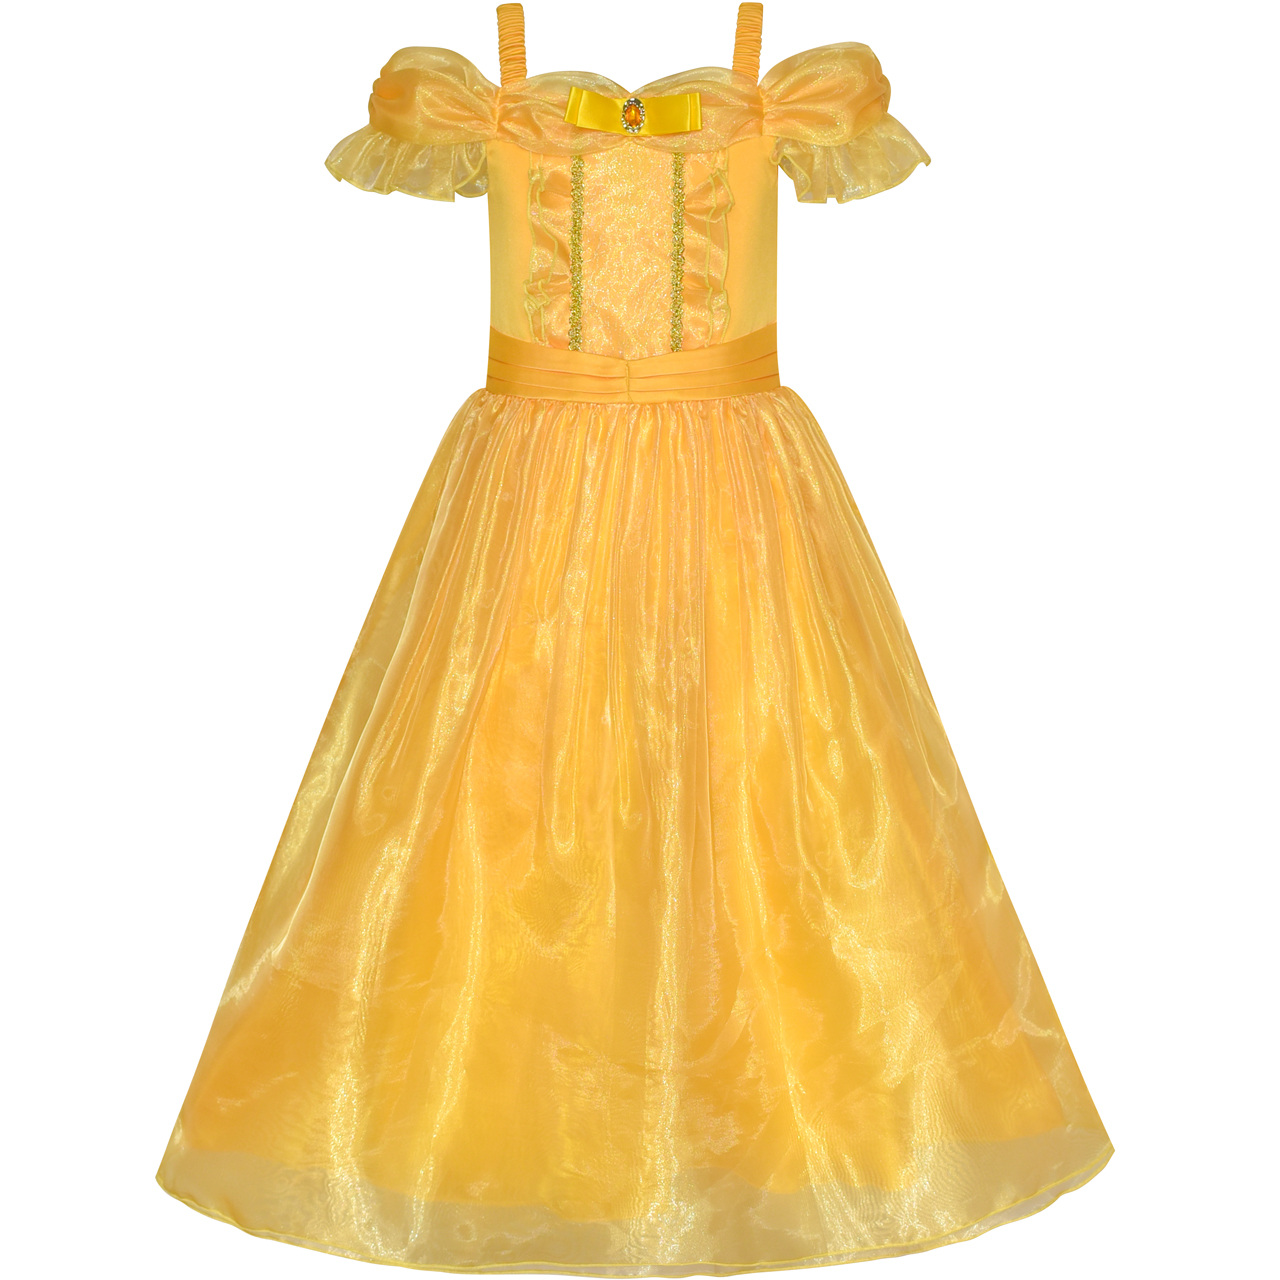 Sunny Fashion Princess Belle Costume Dress Up Girls Dress Yellow 2018 Summer Wedding Party Dresses Kids Clothes Size 4-12 sunny fashion girls dress birthday cupcake polka dot birthday princess 2018 summer wedding party dresses kids clothes size 3 8